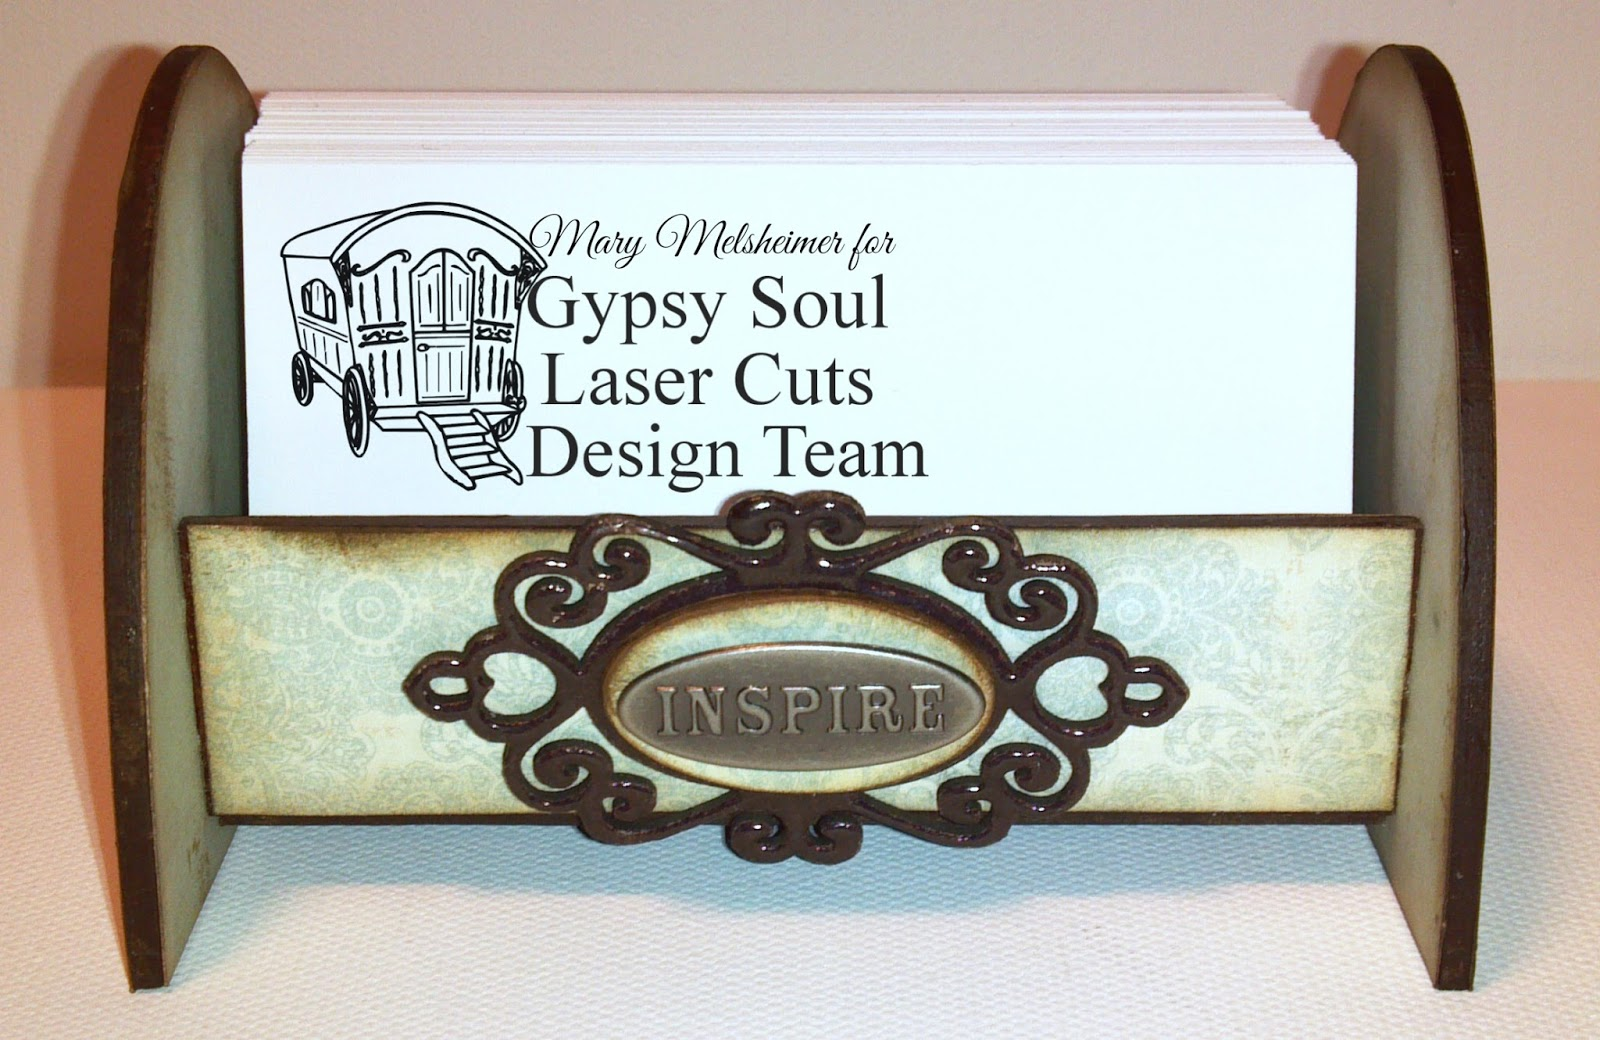 Laser Cuts Business Card Holder If You Are Looking For Another Quick And Easy Project This Is It As Can Tell By The Picture Below